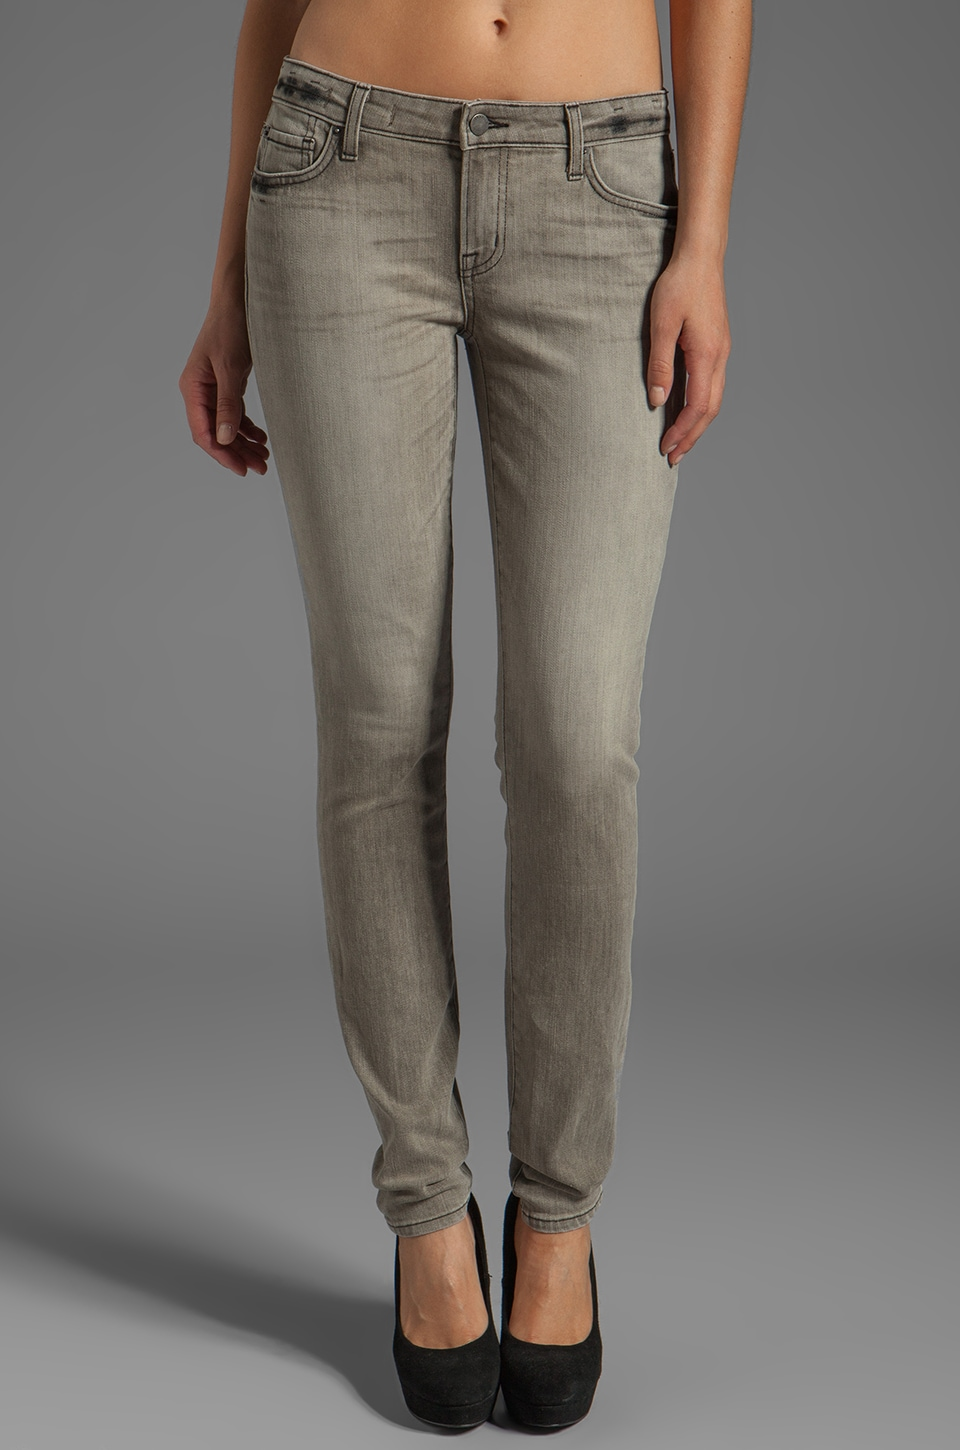 TEXTILE Elizabeth and James Debbie Skinny in Ash